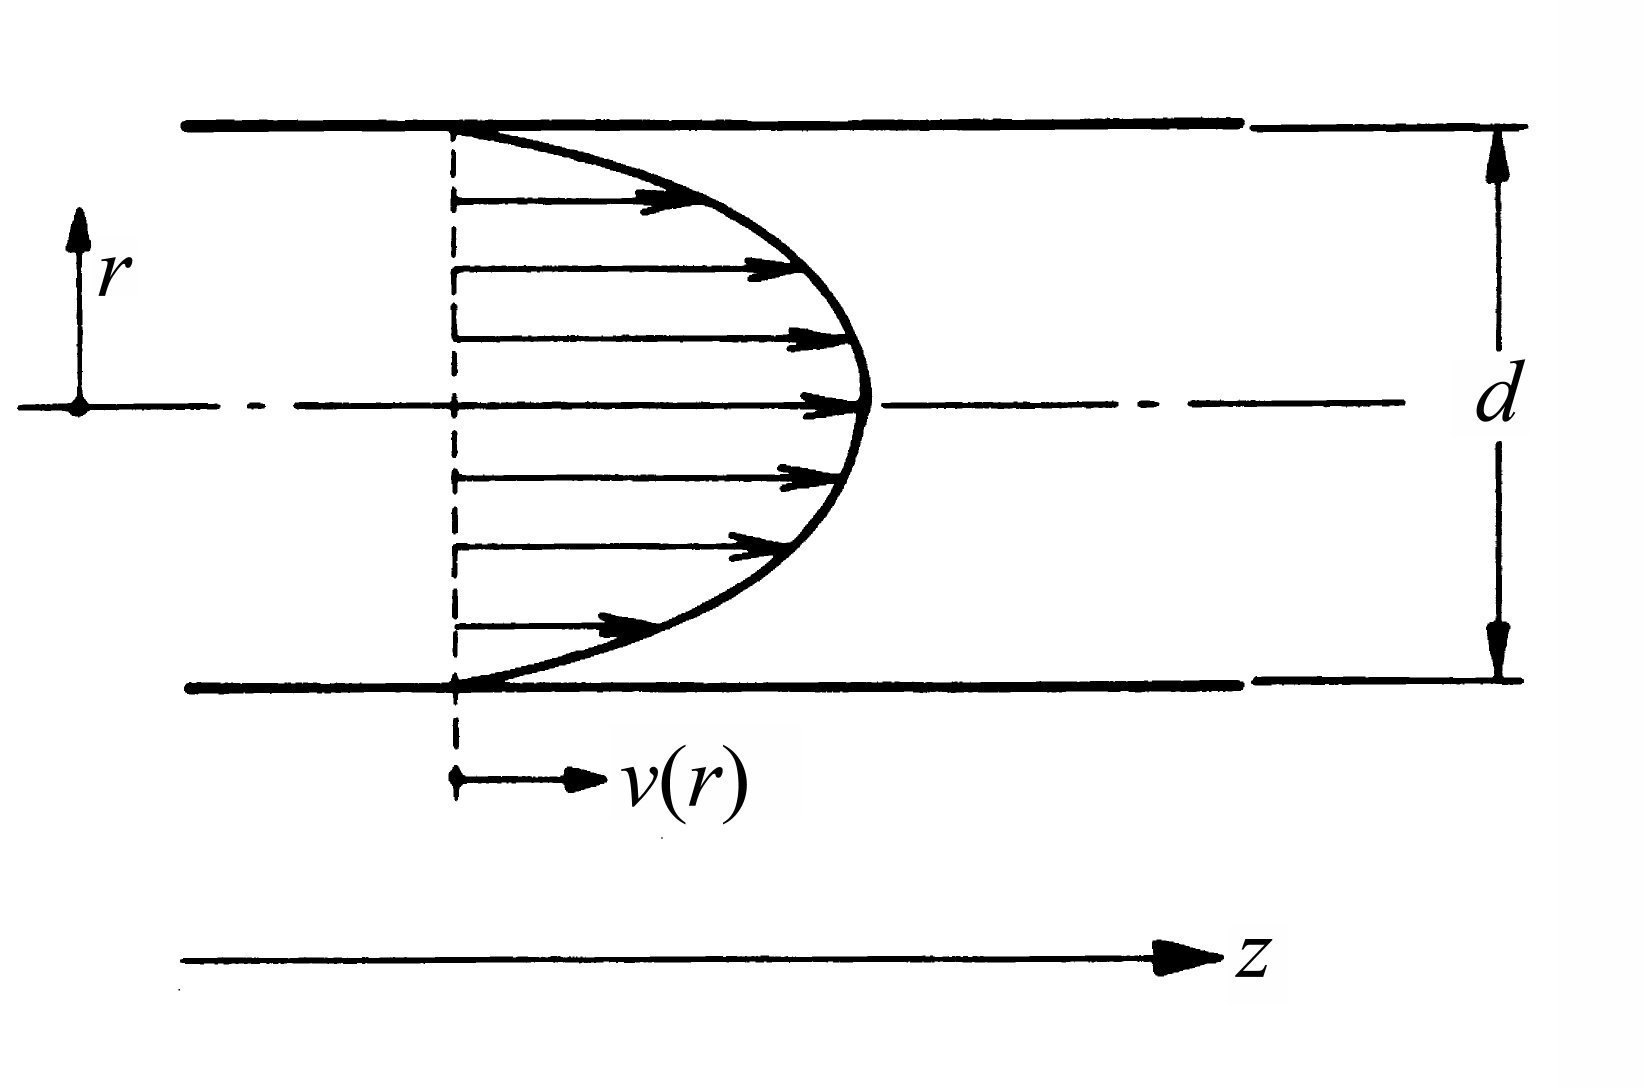 Flow of gases through tubes and orifices - Sketch of flow profile in a cylindrical tube